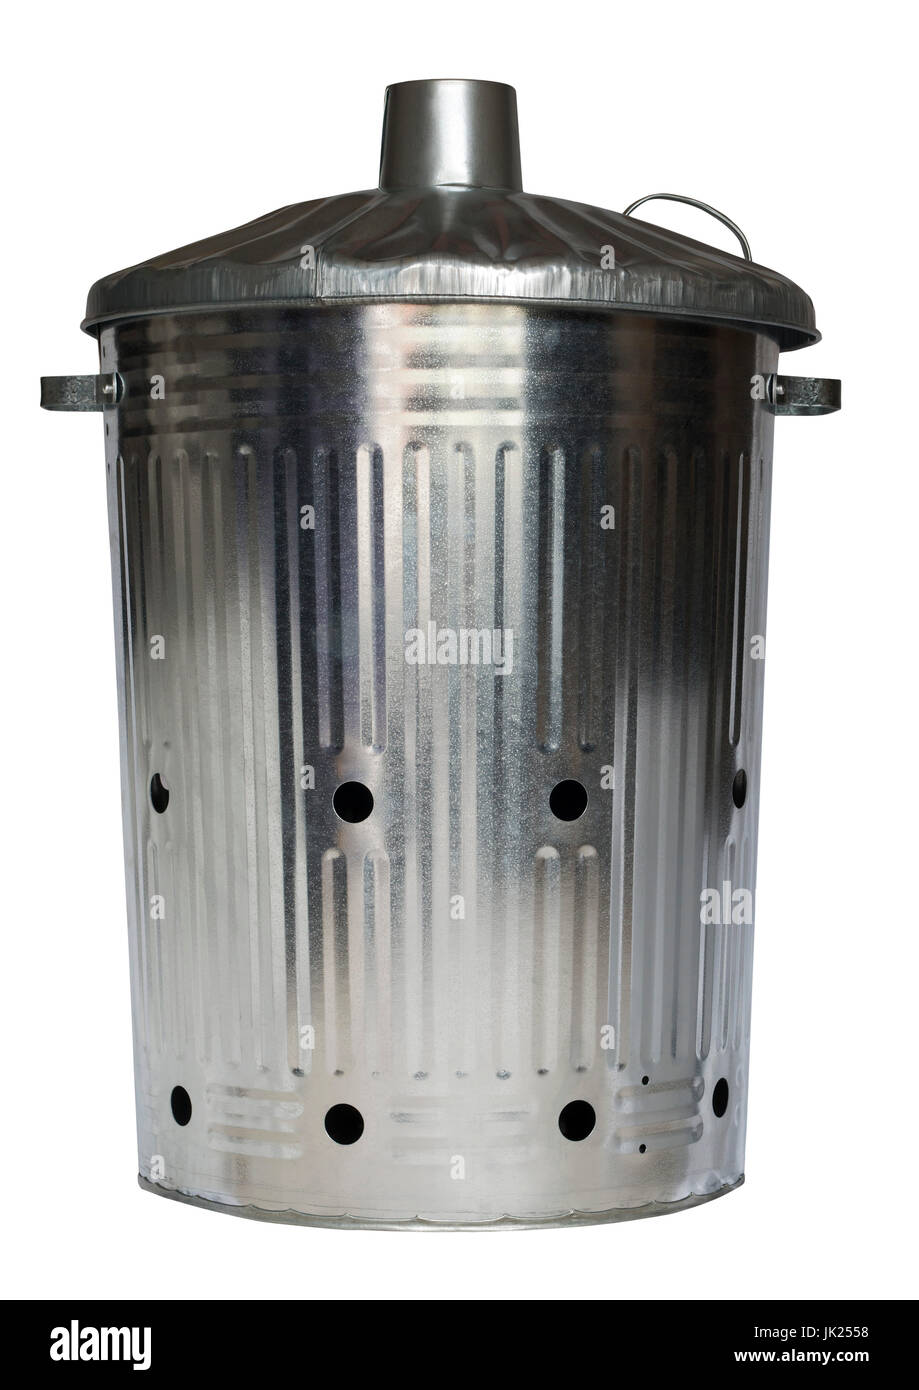 Galvanised incinerator gardening dustbin on an isolated white background with a clipping path - Stock Image